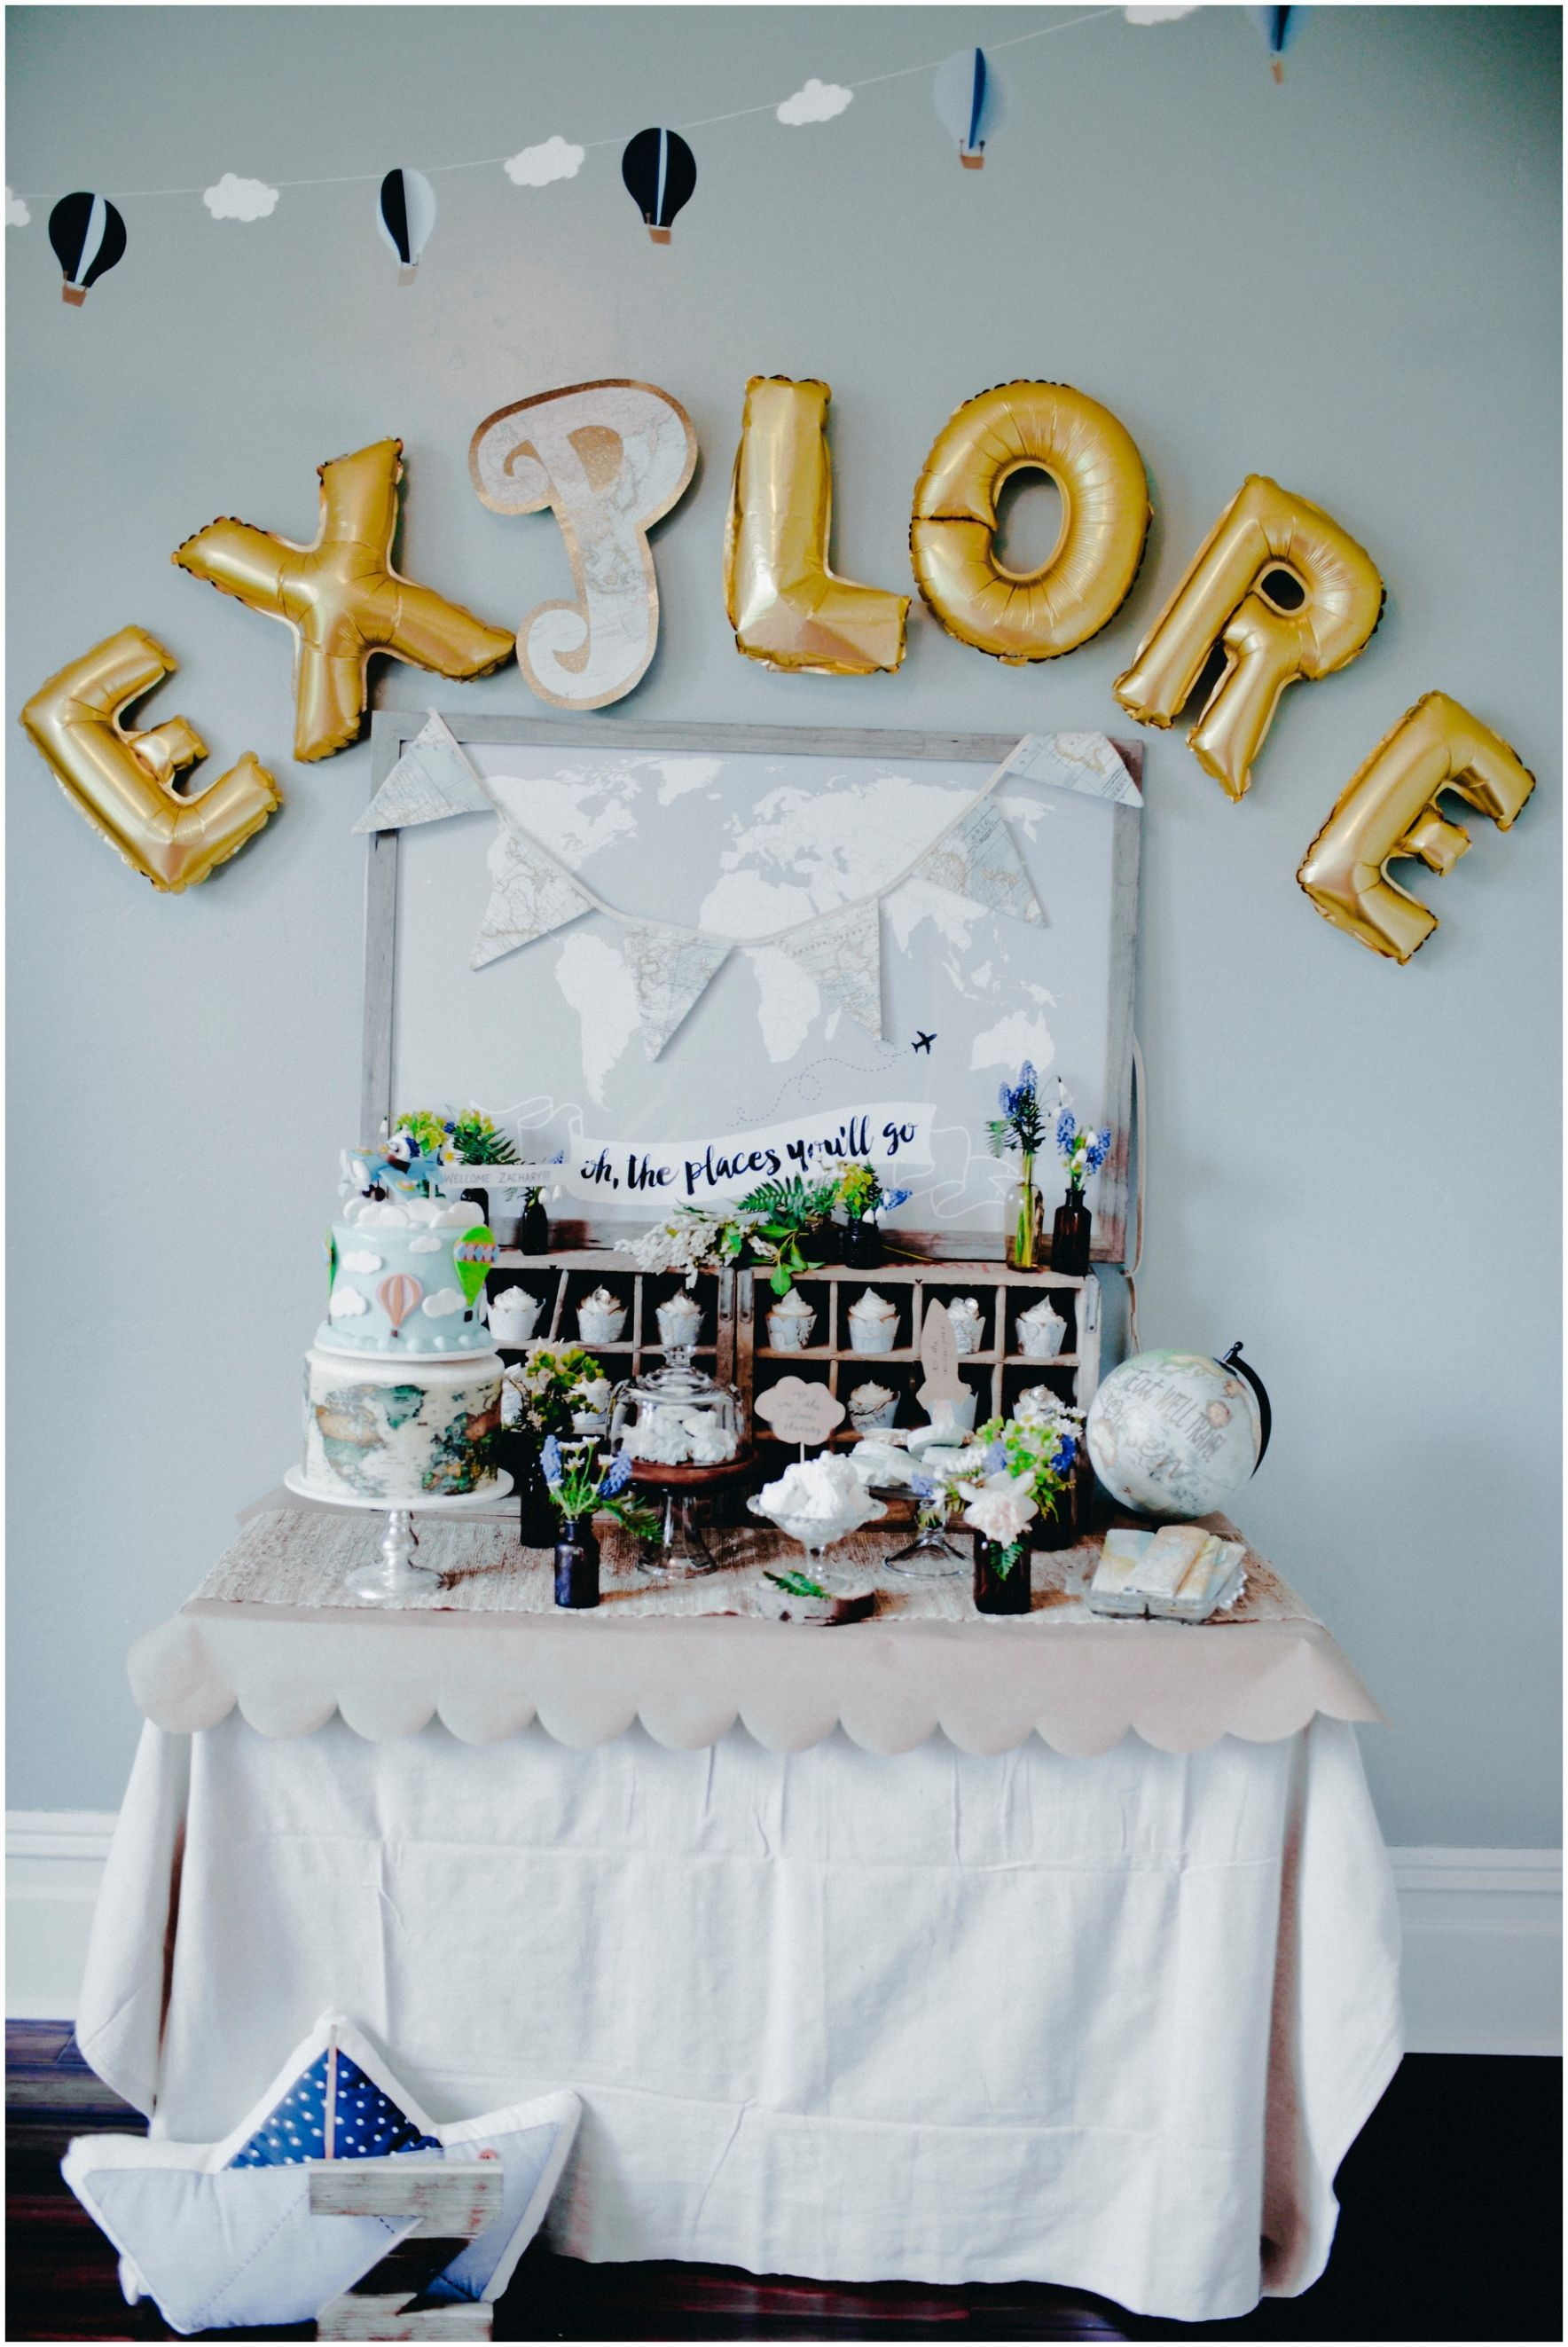 Locations To Have A Baby Shower Near Me : locations, shower, Beautiful, Places, Shower, Ideas, House, Generation